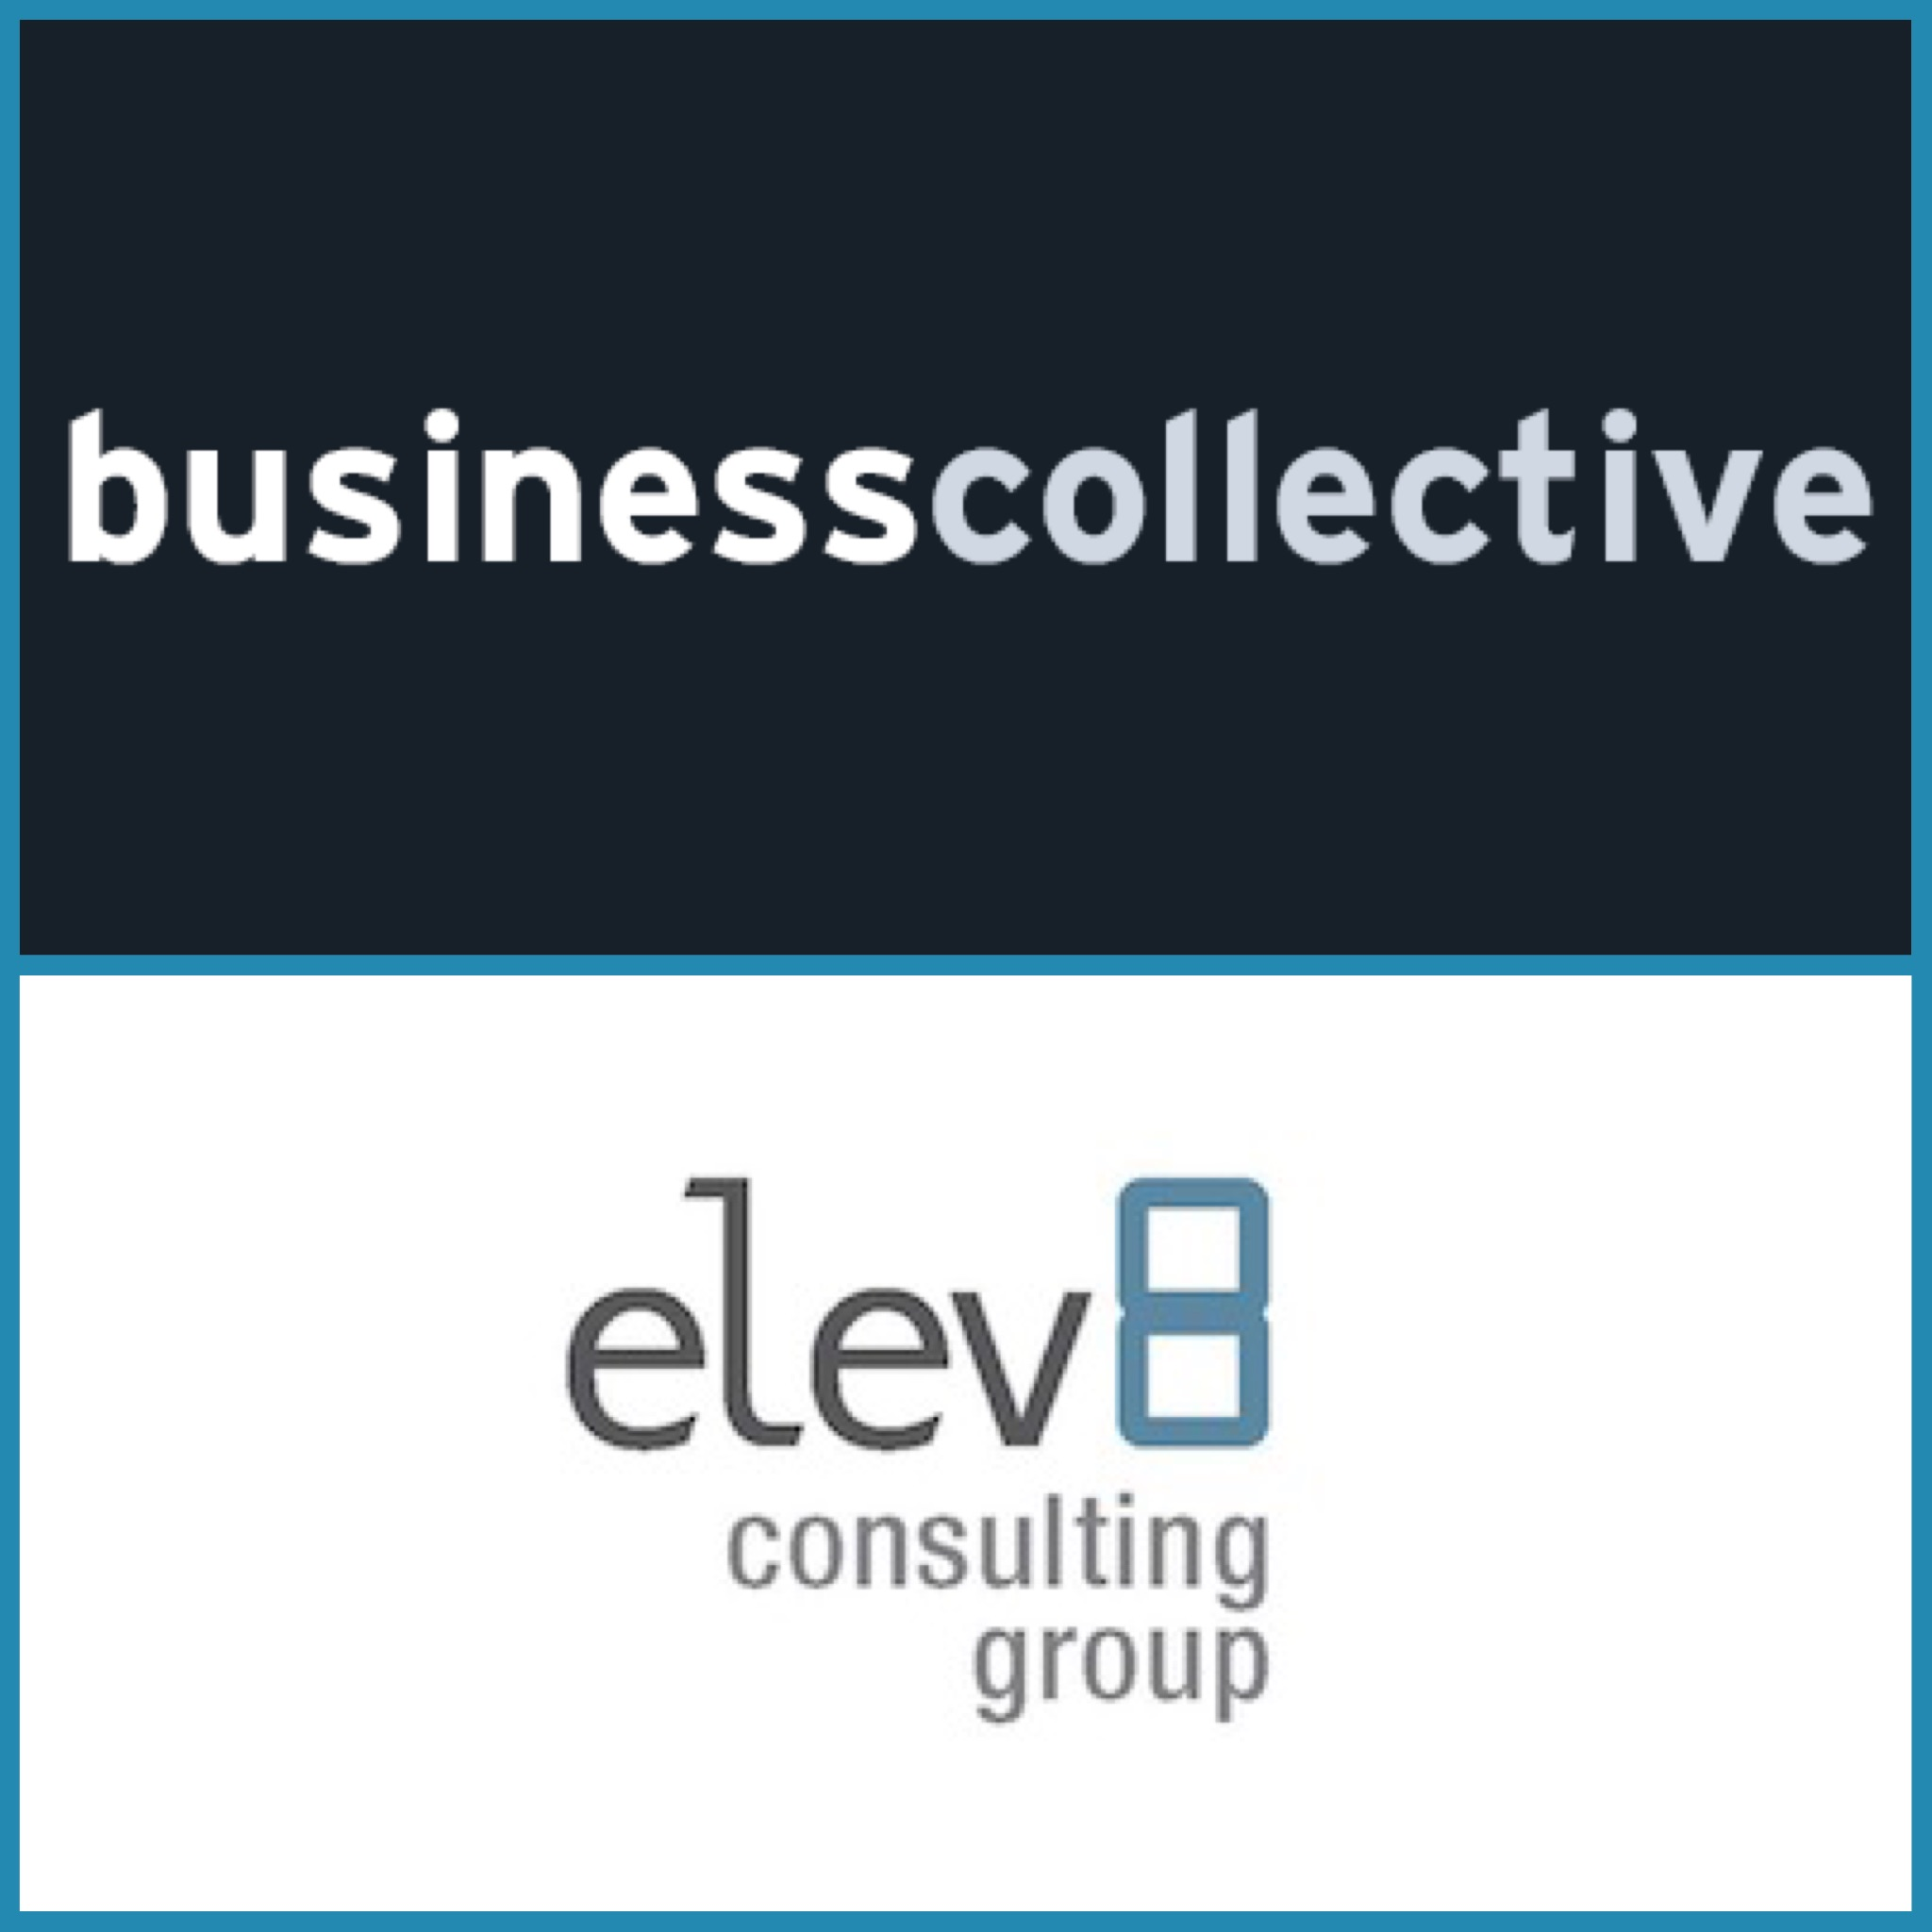 Elev8 Consulting Group Business Collective Angela Delmedico